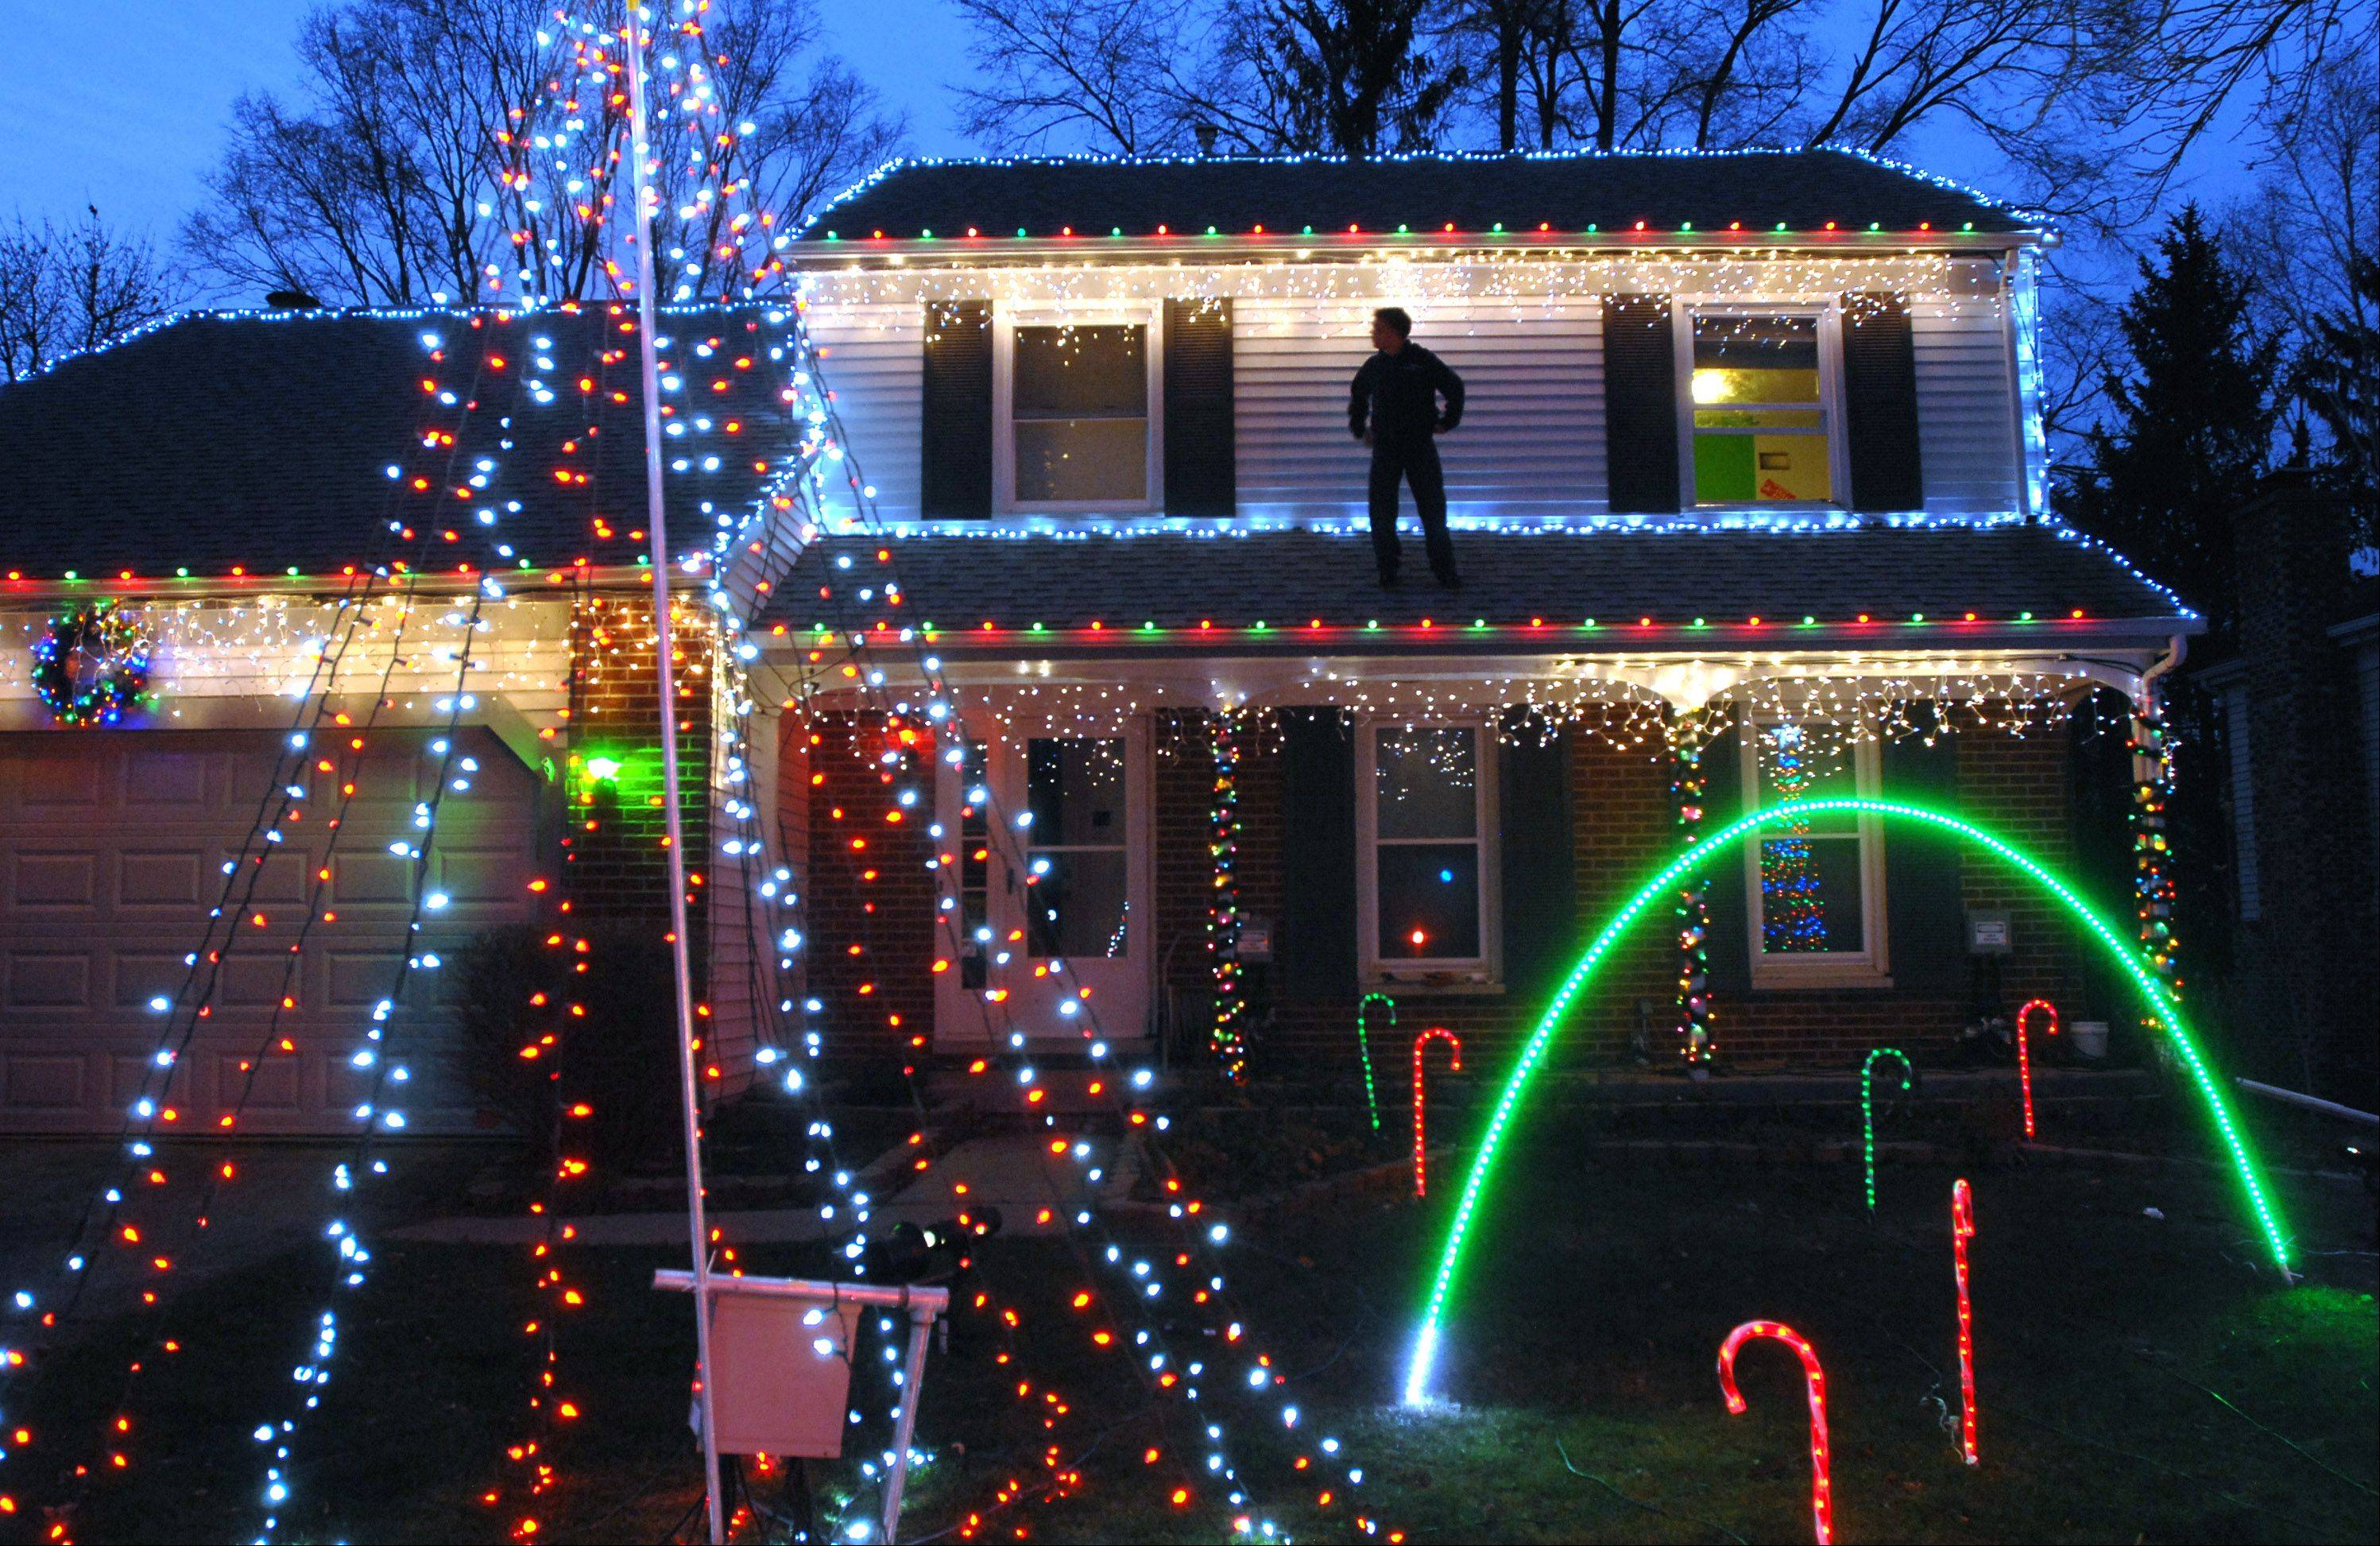 Gurnee resident Adam Germann makes a final inspection of his light show from the roof of his Prairie Oak Road residence before opening night on Thursday, Dec. 1. Germann takes food and money collections for the Northern Illinois Food Bank.